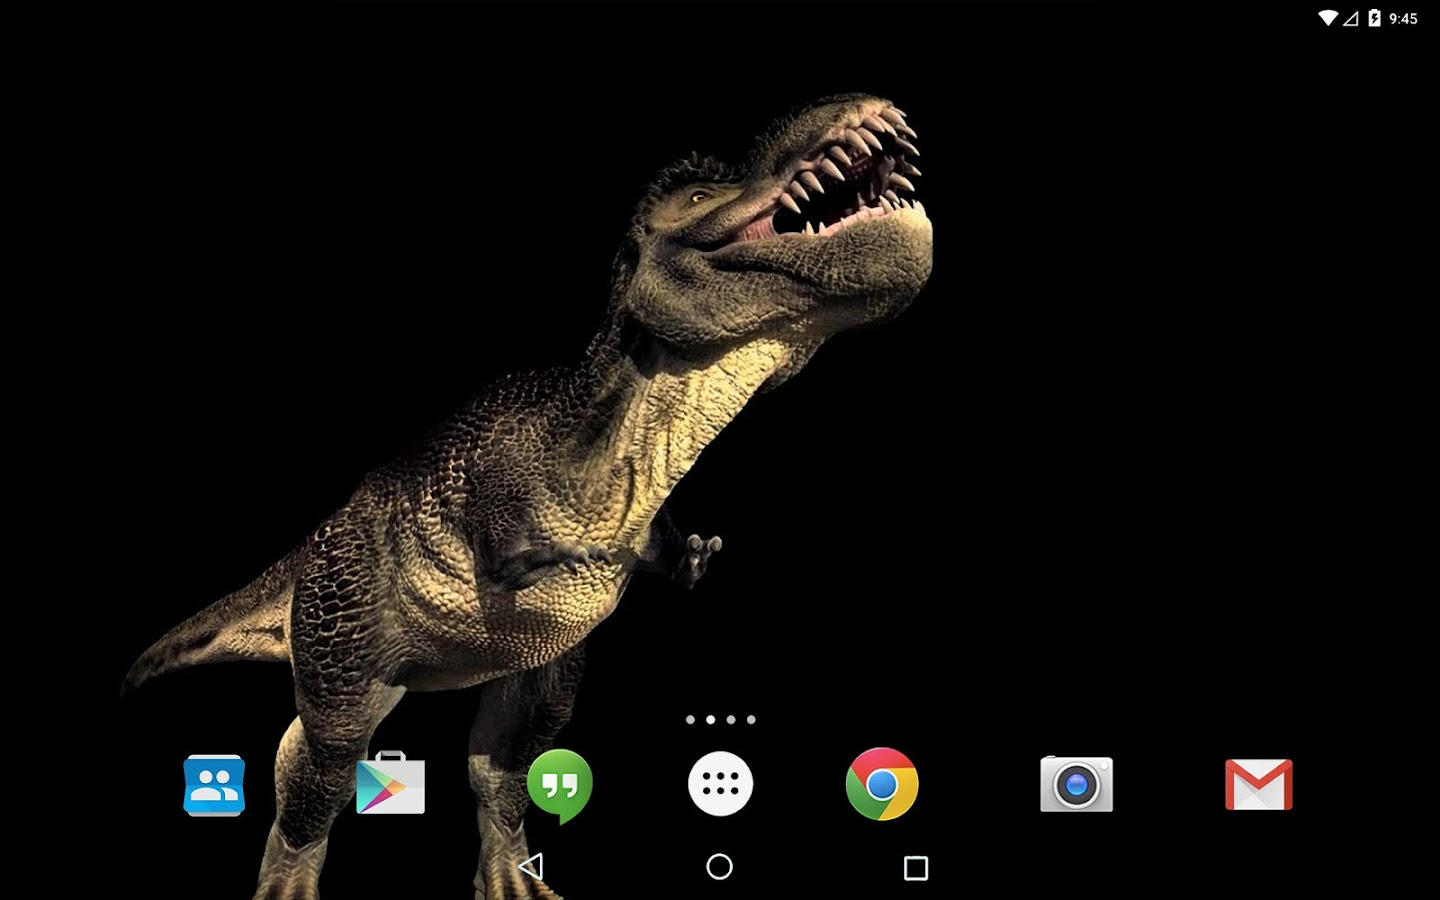 dinosaur live wallpaper for android